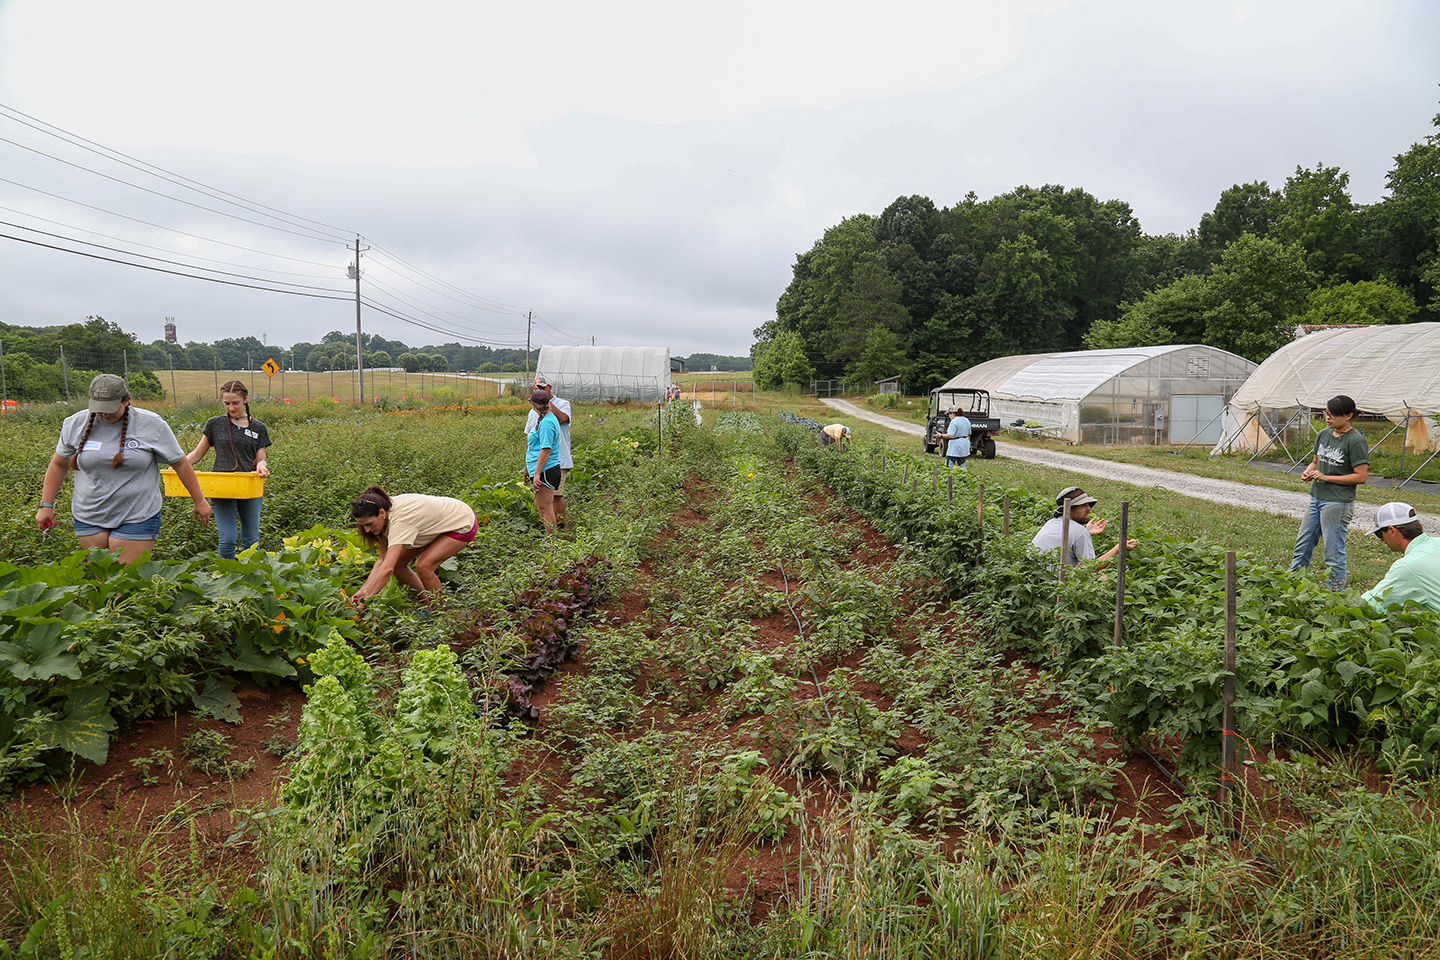 Teachers harvesting produce in a field at the UGArden